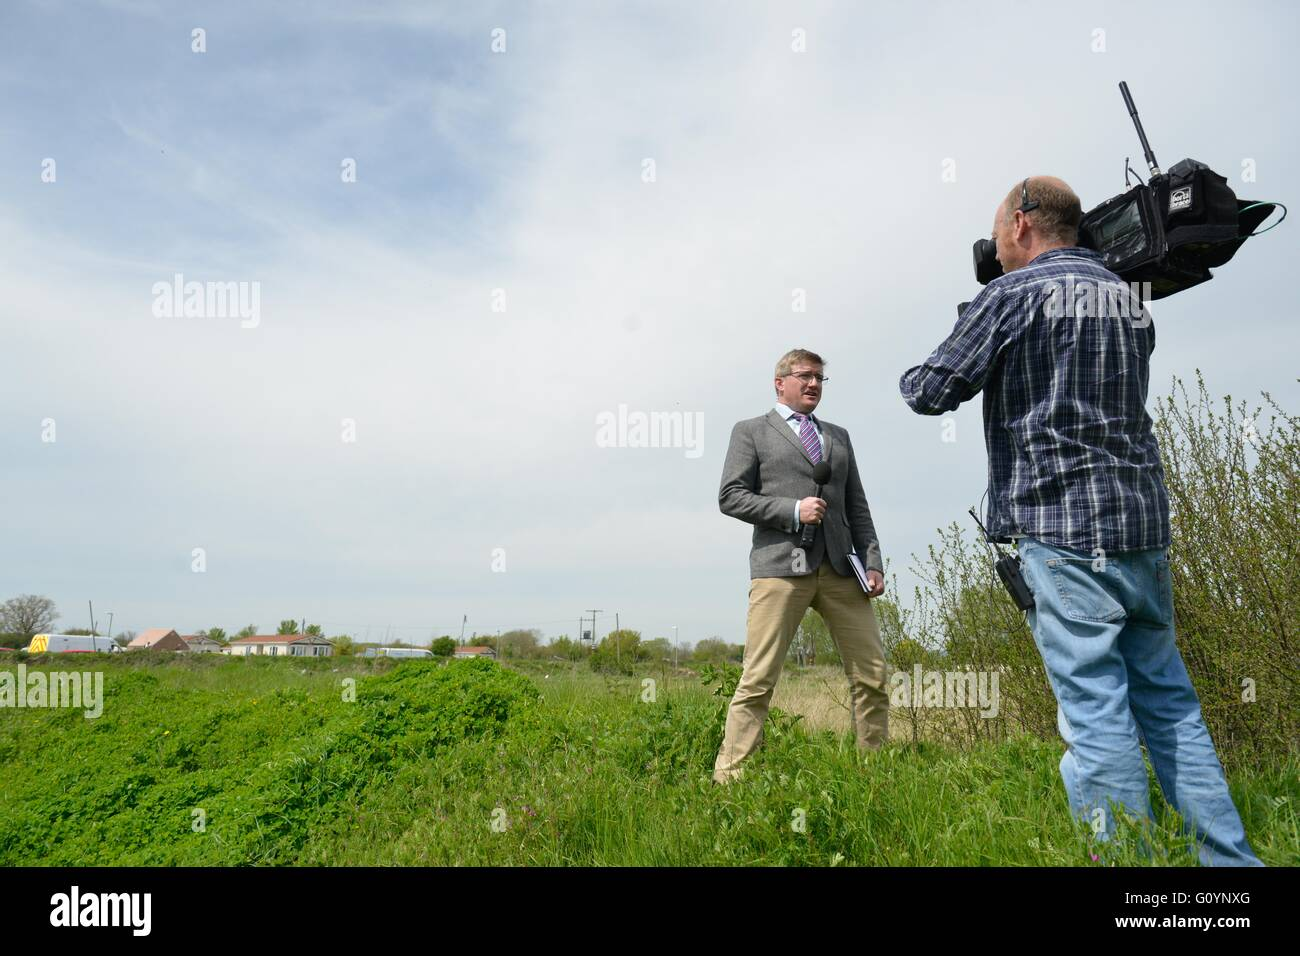 Ilpen, Somerset, UK. 6th May, 2016. Police carry out major search of the crime scene in Ilpen, Police Dogs, Search - Stock Image